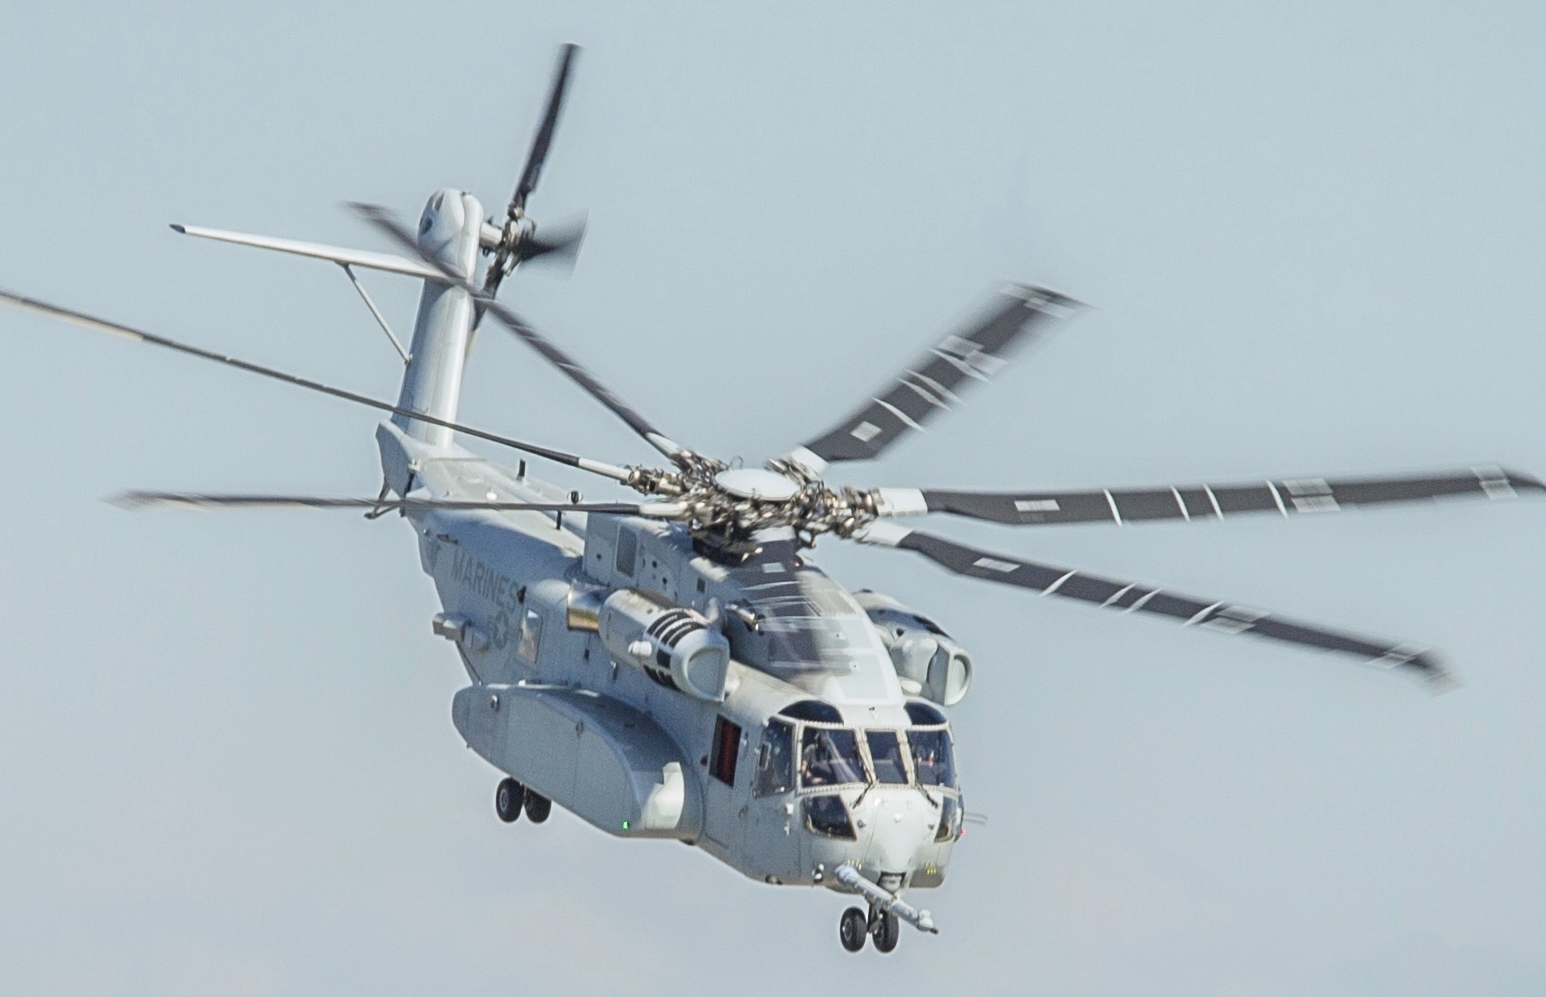 Department Of Defense Procures An Additional Six Sikorsky CH-53K King Stallion Helicopters For US Marines